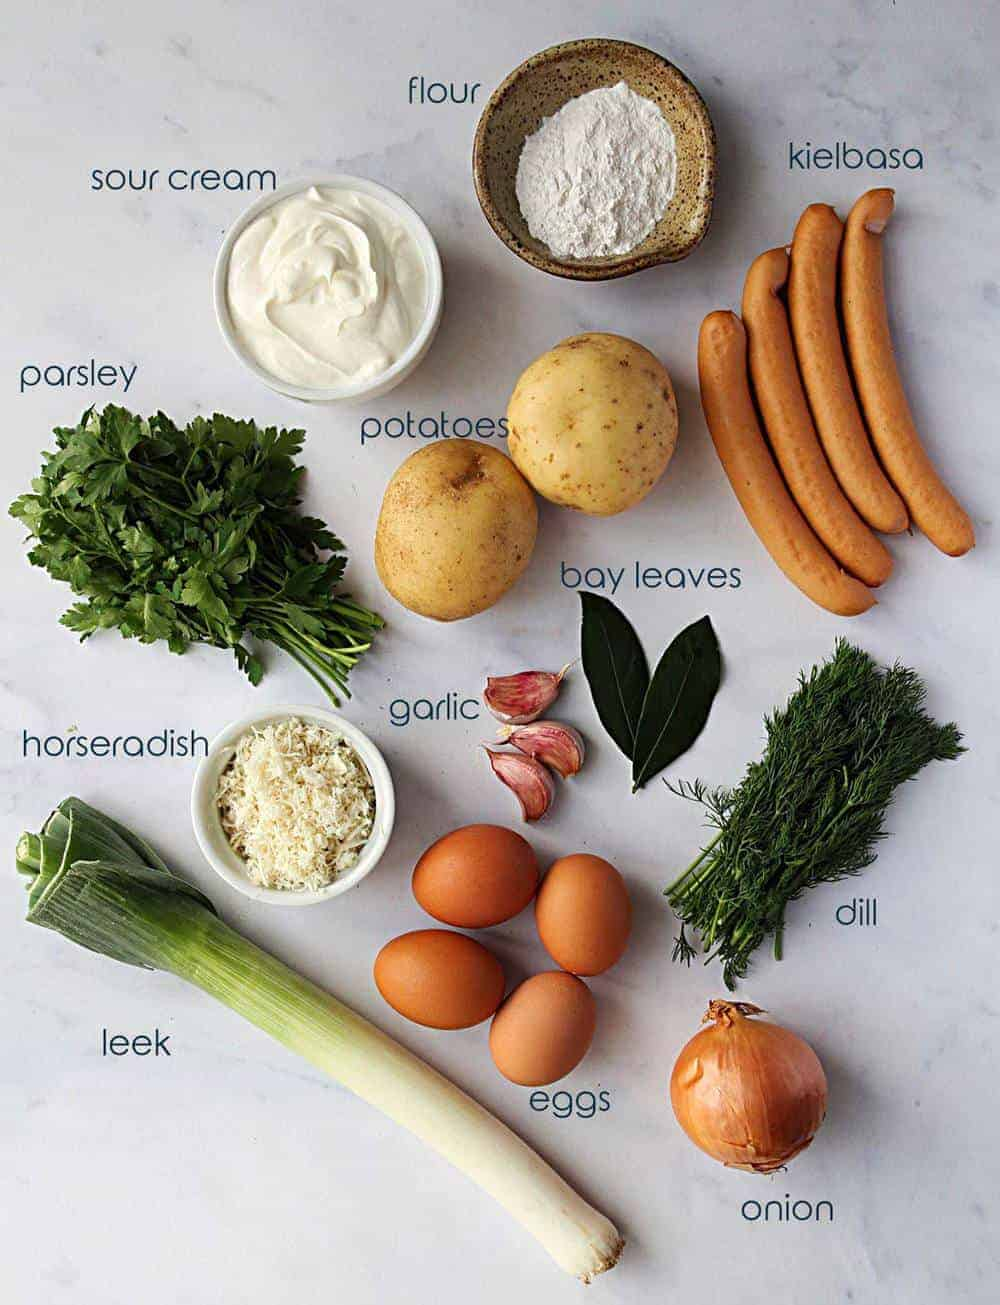 Smoked sausage, leek, eggs, potatoes, and other ingredients for white borscht recipe.